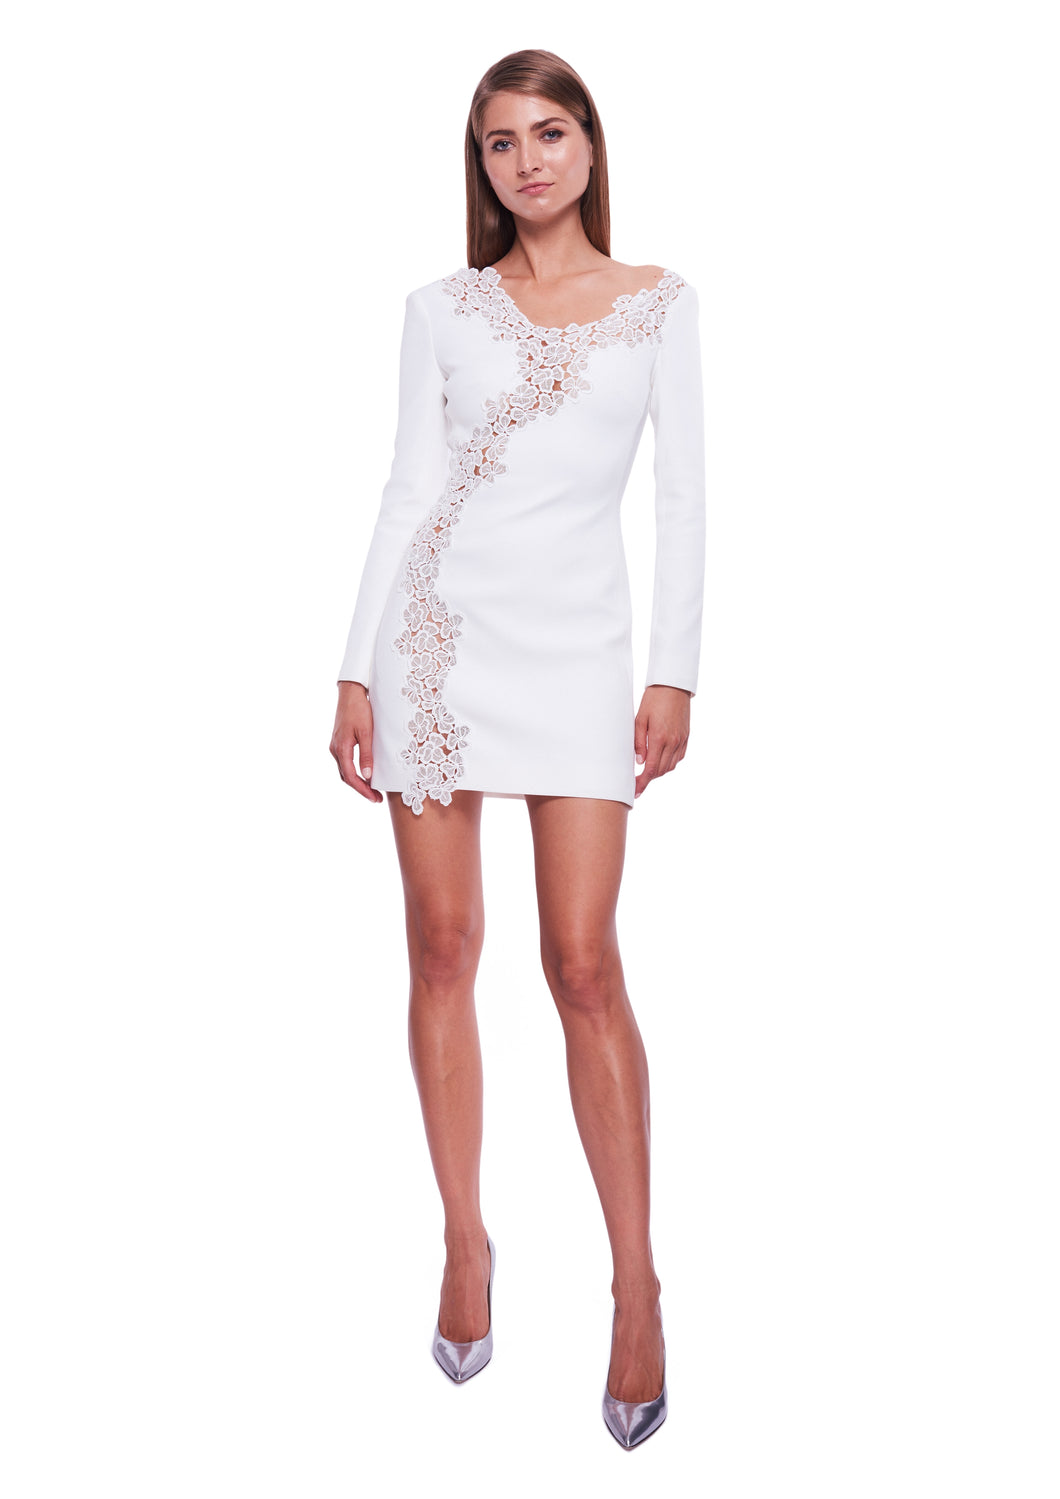 WHITE LACE TRIMMED MINI DRESS